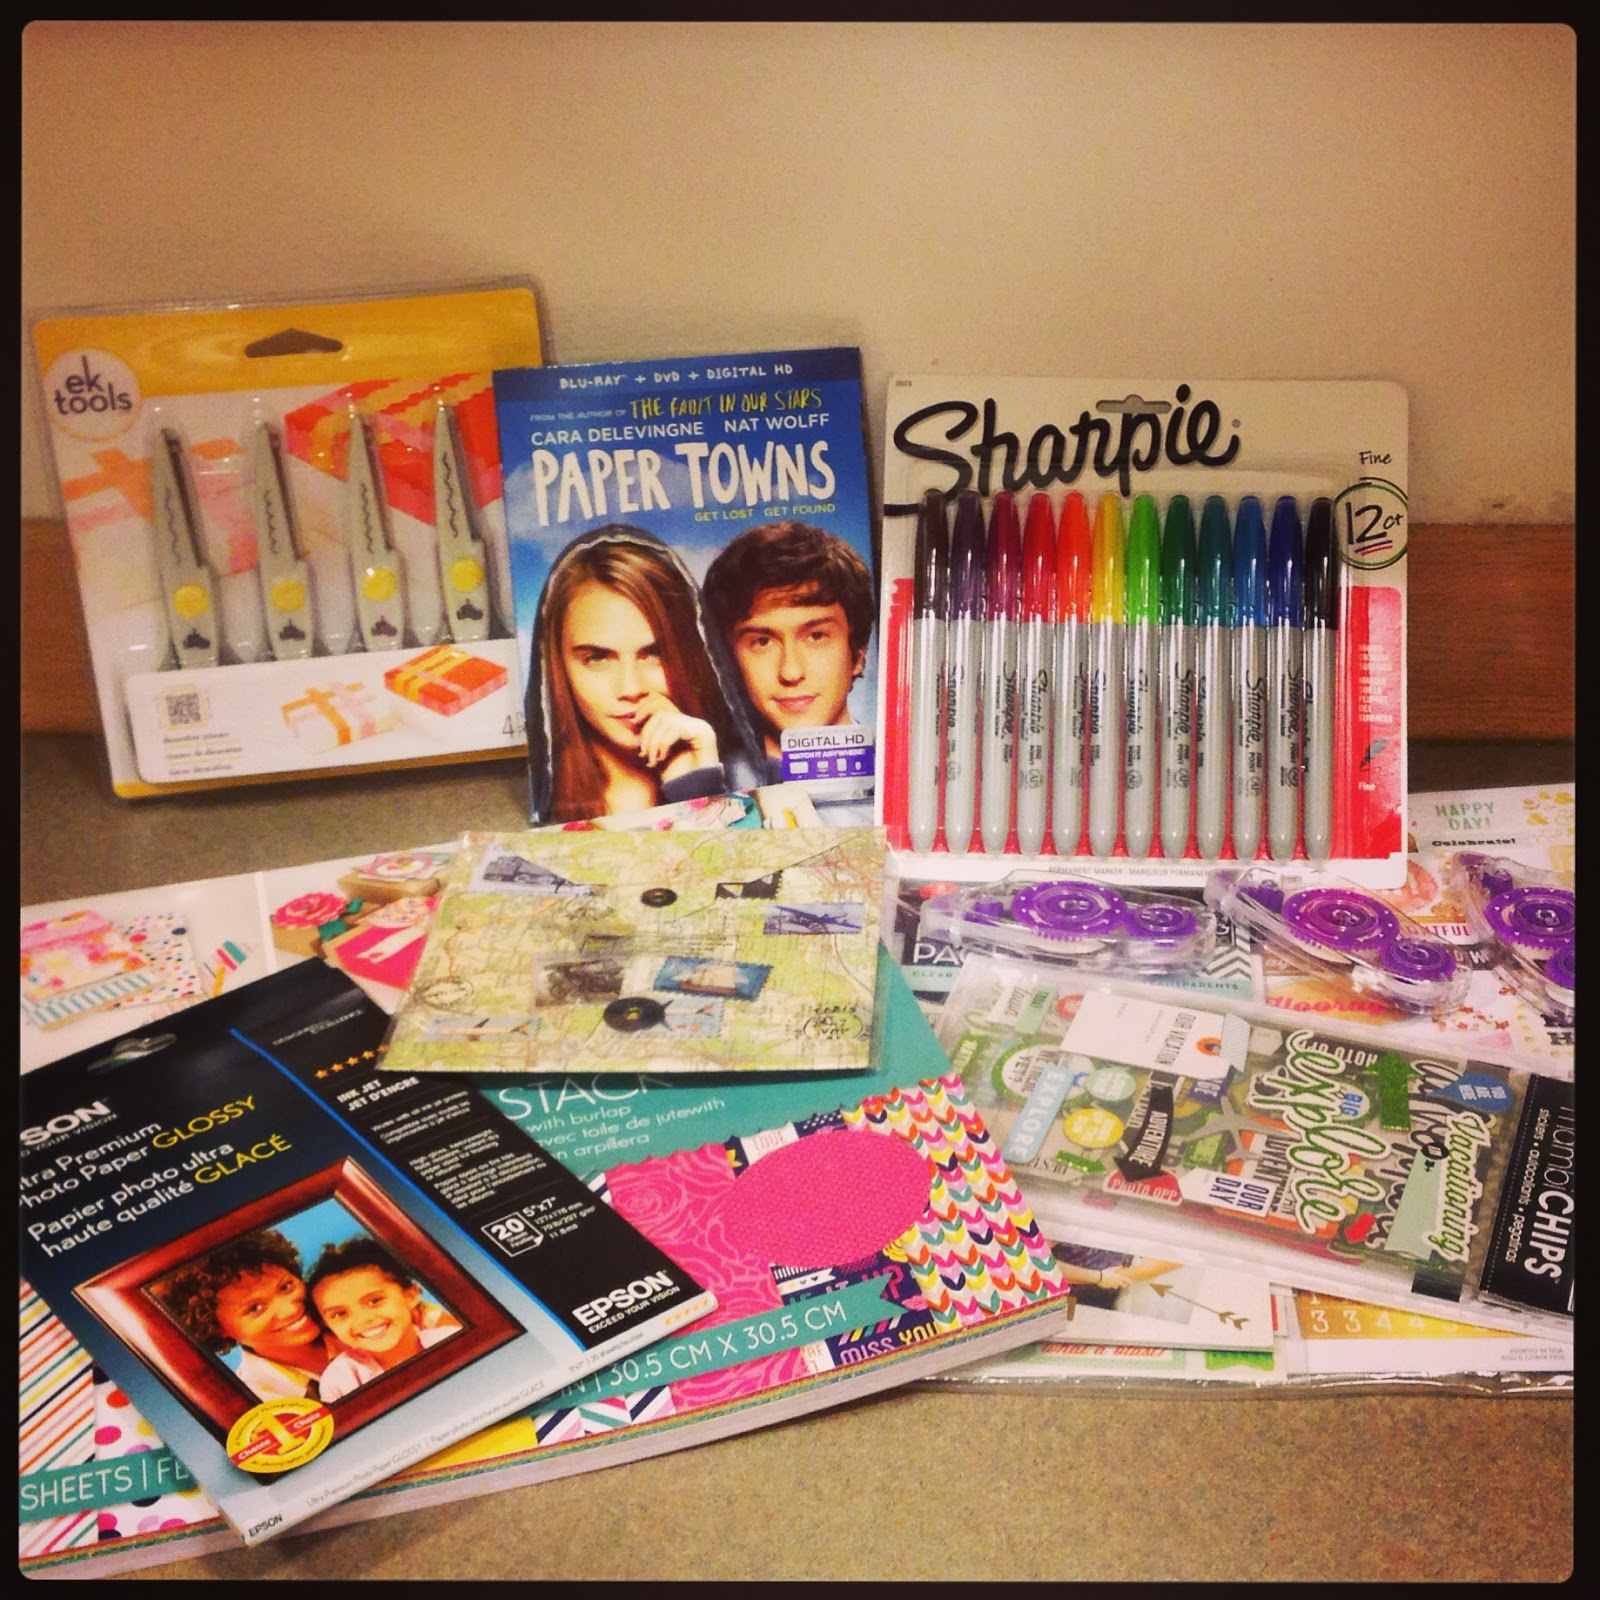 How to make scrapbook at home - Fox Home Insiders Sent An Amazing Scrapbook Package Perfect For A Paper Towns Party It Featured Travel Themed Embellishments Paper In Gorgeous Colors